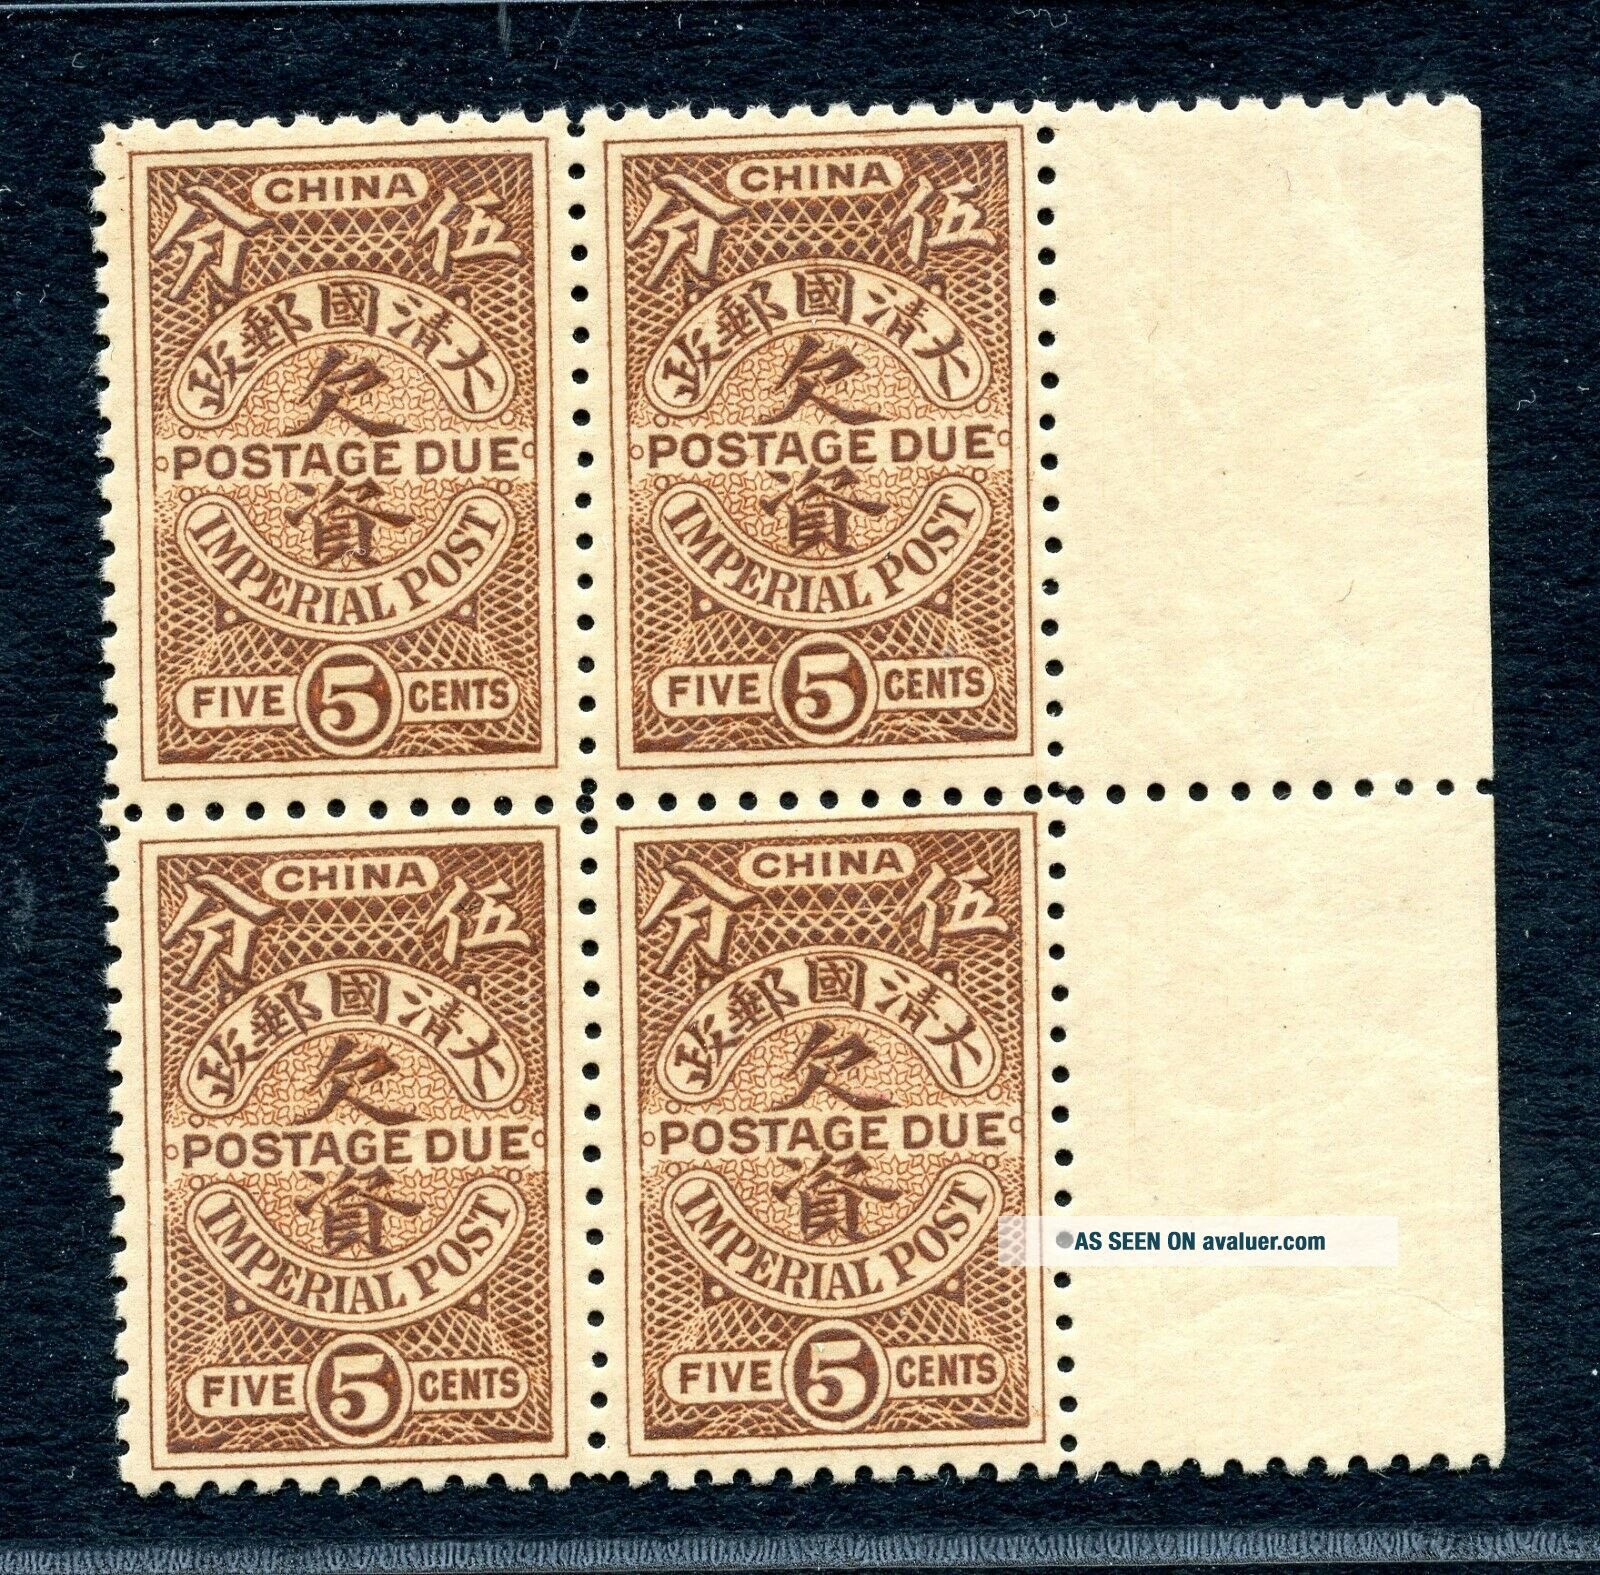 1911 Postage Due Unissued 5 cents block of 4 never hinged Chan DU3 RARE